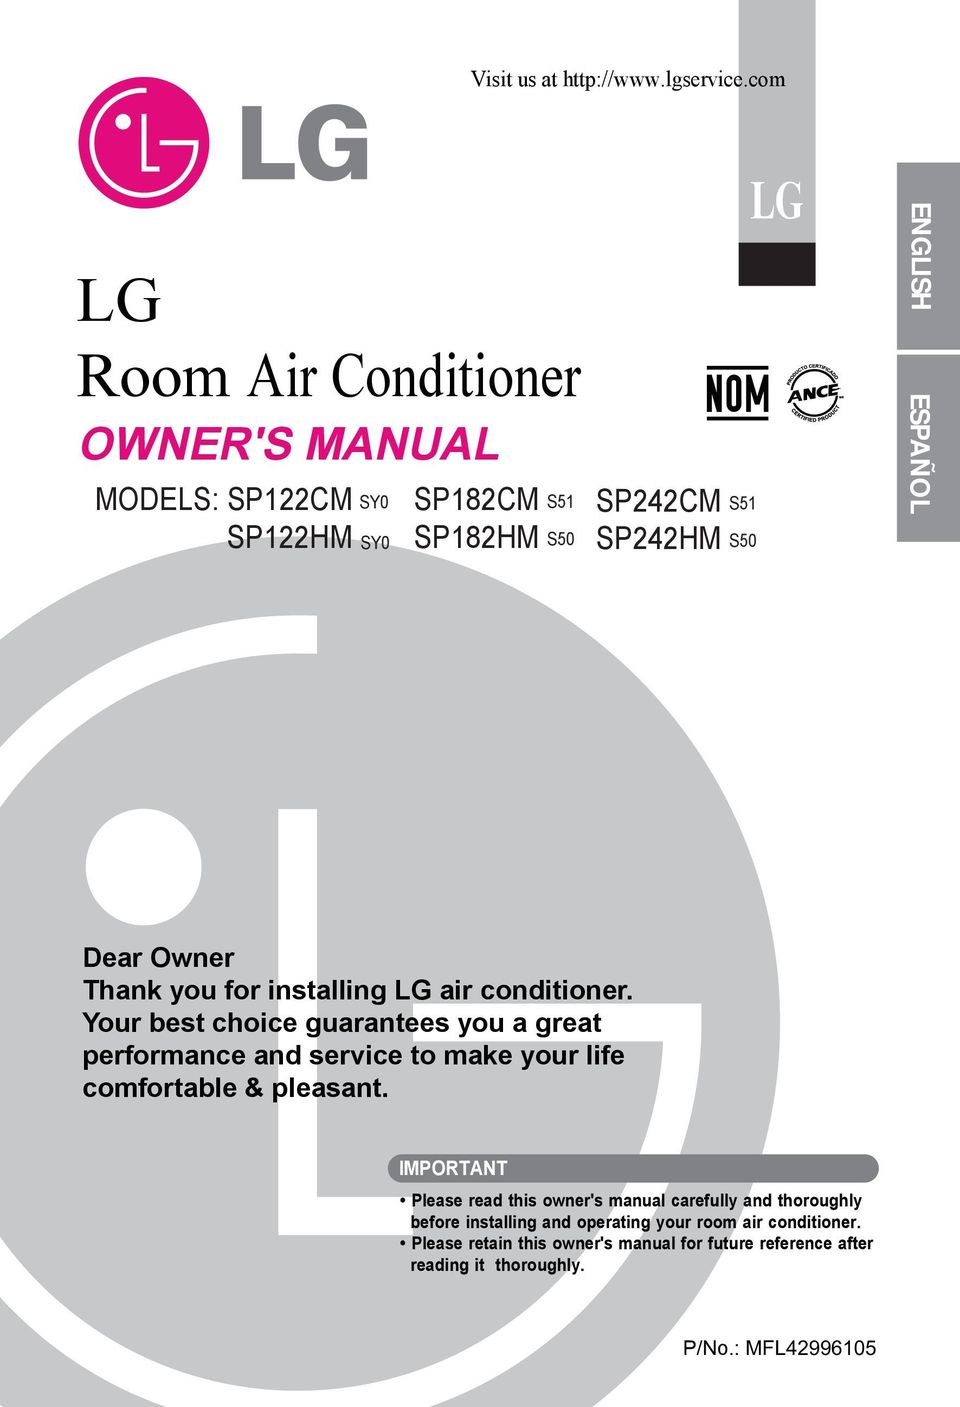 Dear Owner Thank you for installing LG air conditioner.